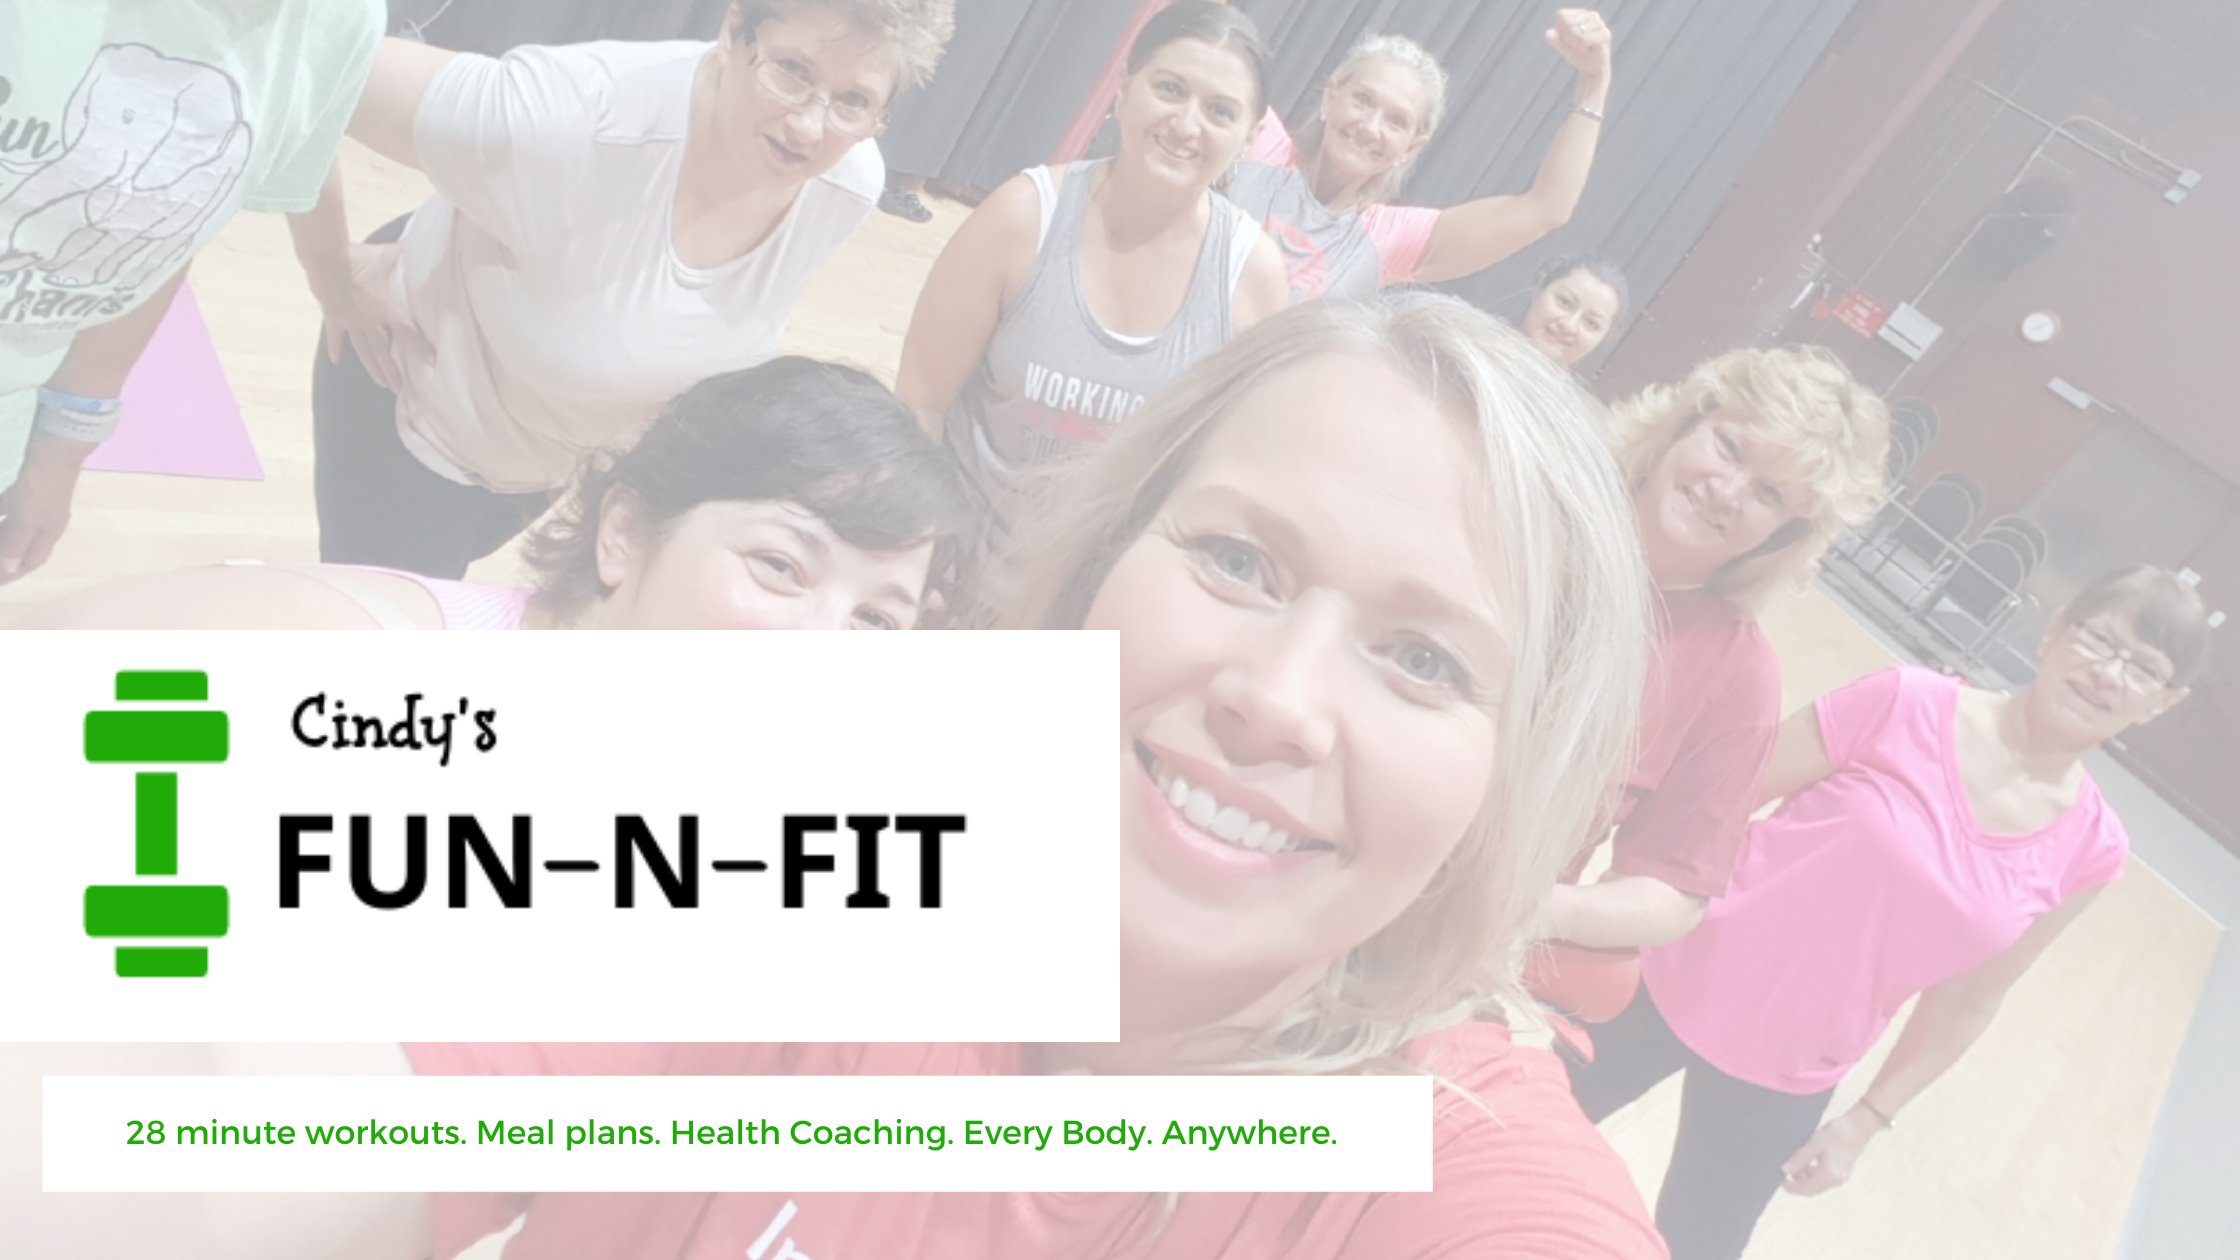 image of Cindy Newland Fun-N-Fit weight loss group virtual fitness classes plant based meal plans health coaching, exercise class in the privacy and safety of your home exercise classes for everyone